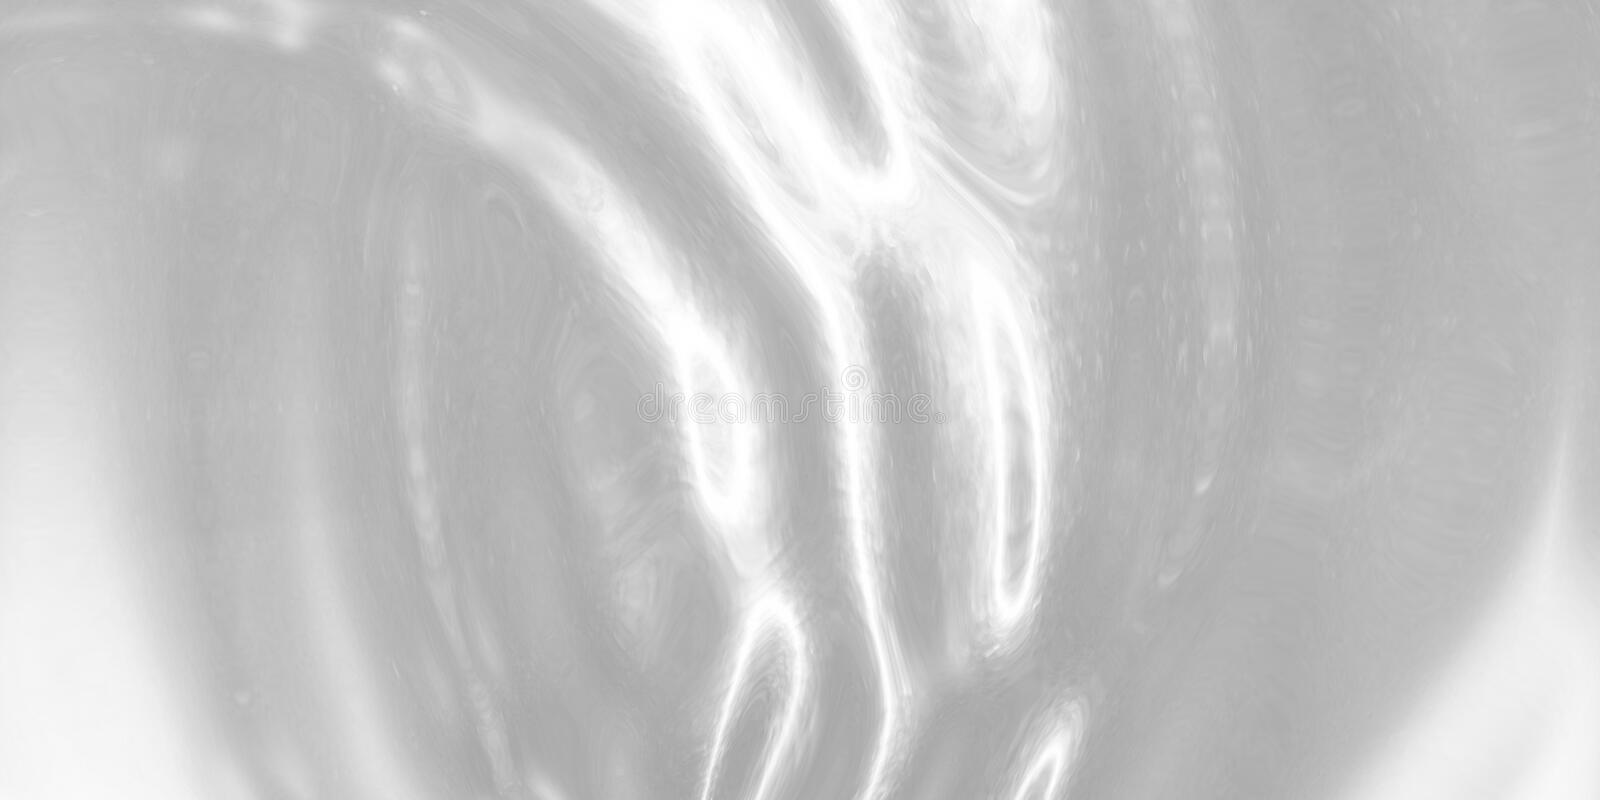 Liquid silver metal rippled background. Ropples effect. Abstract brushed metal texture. Wide realistic illustration royalty free illustration